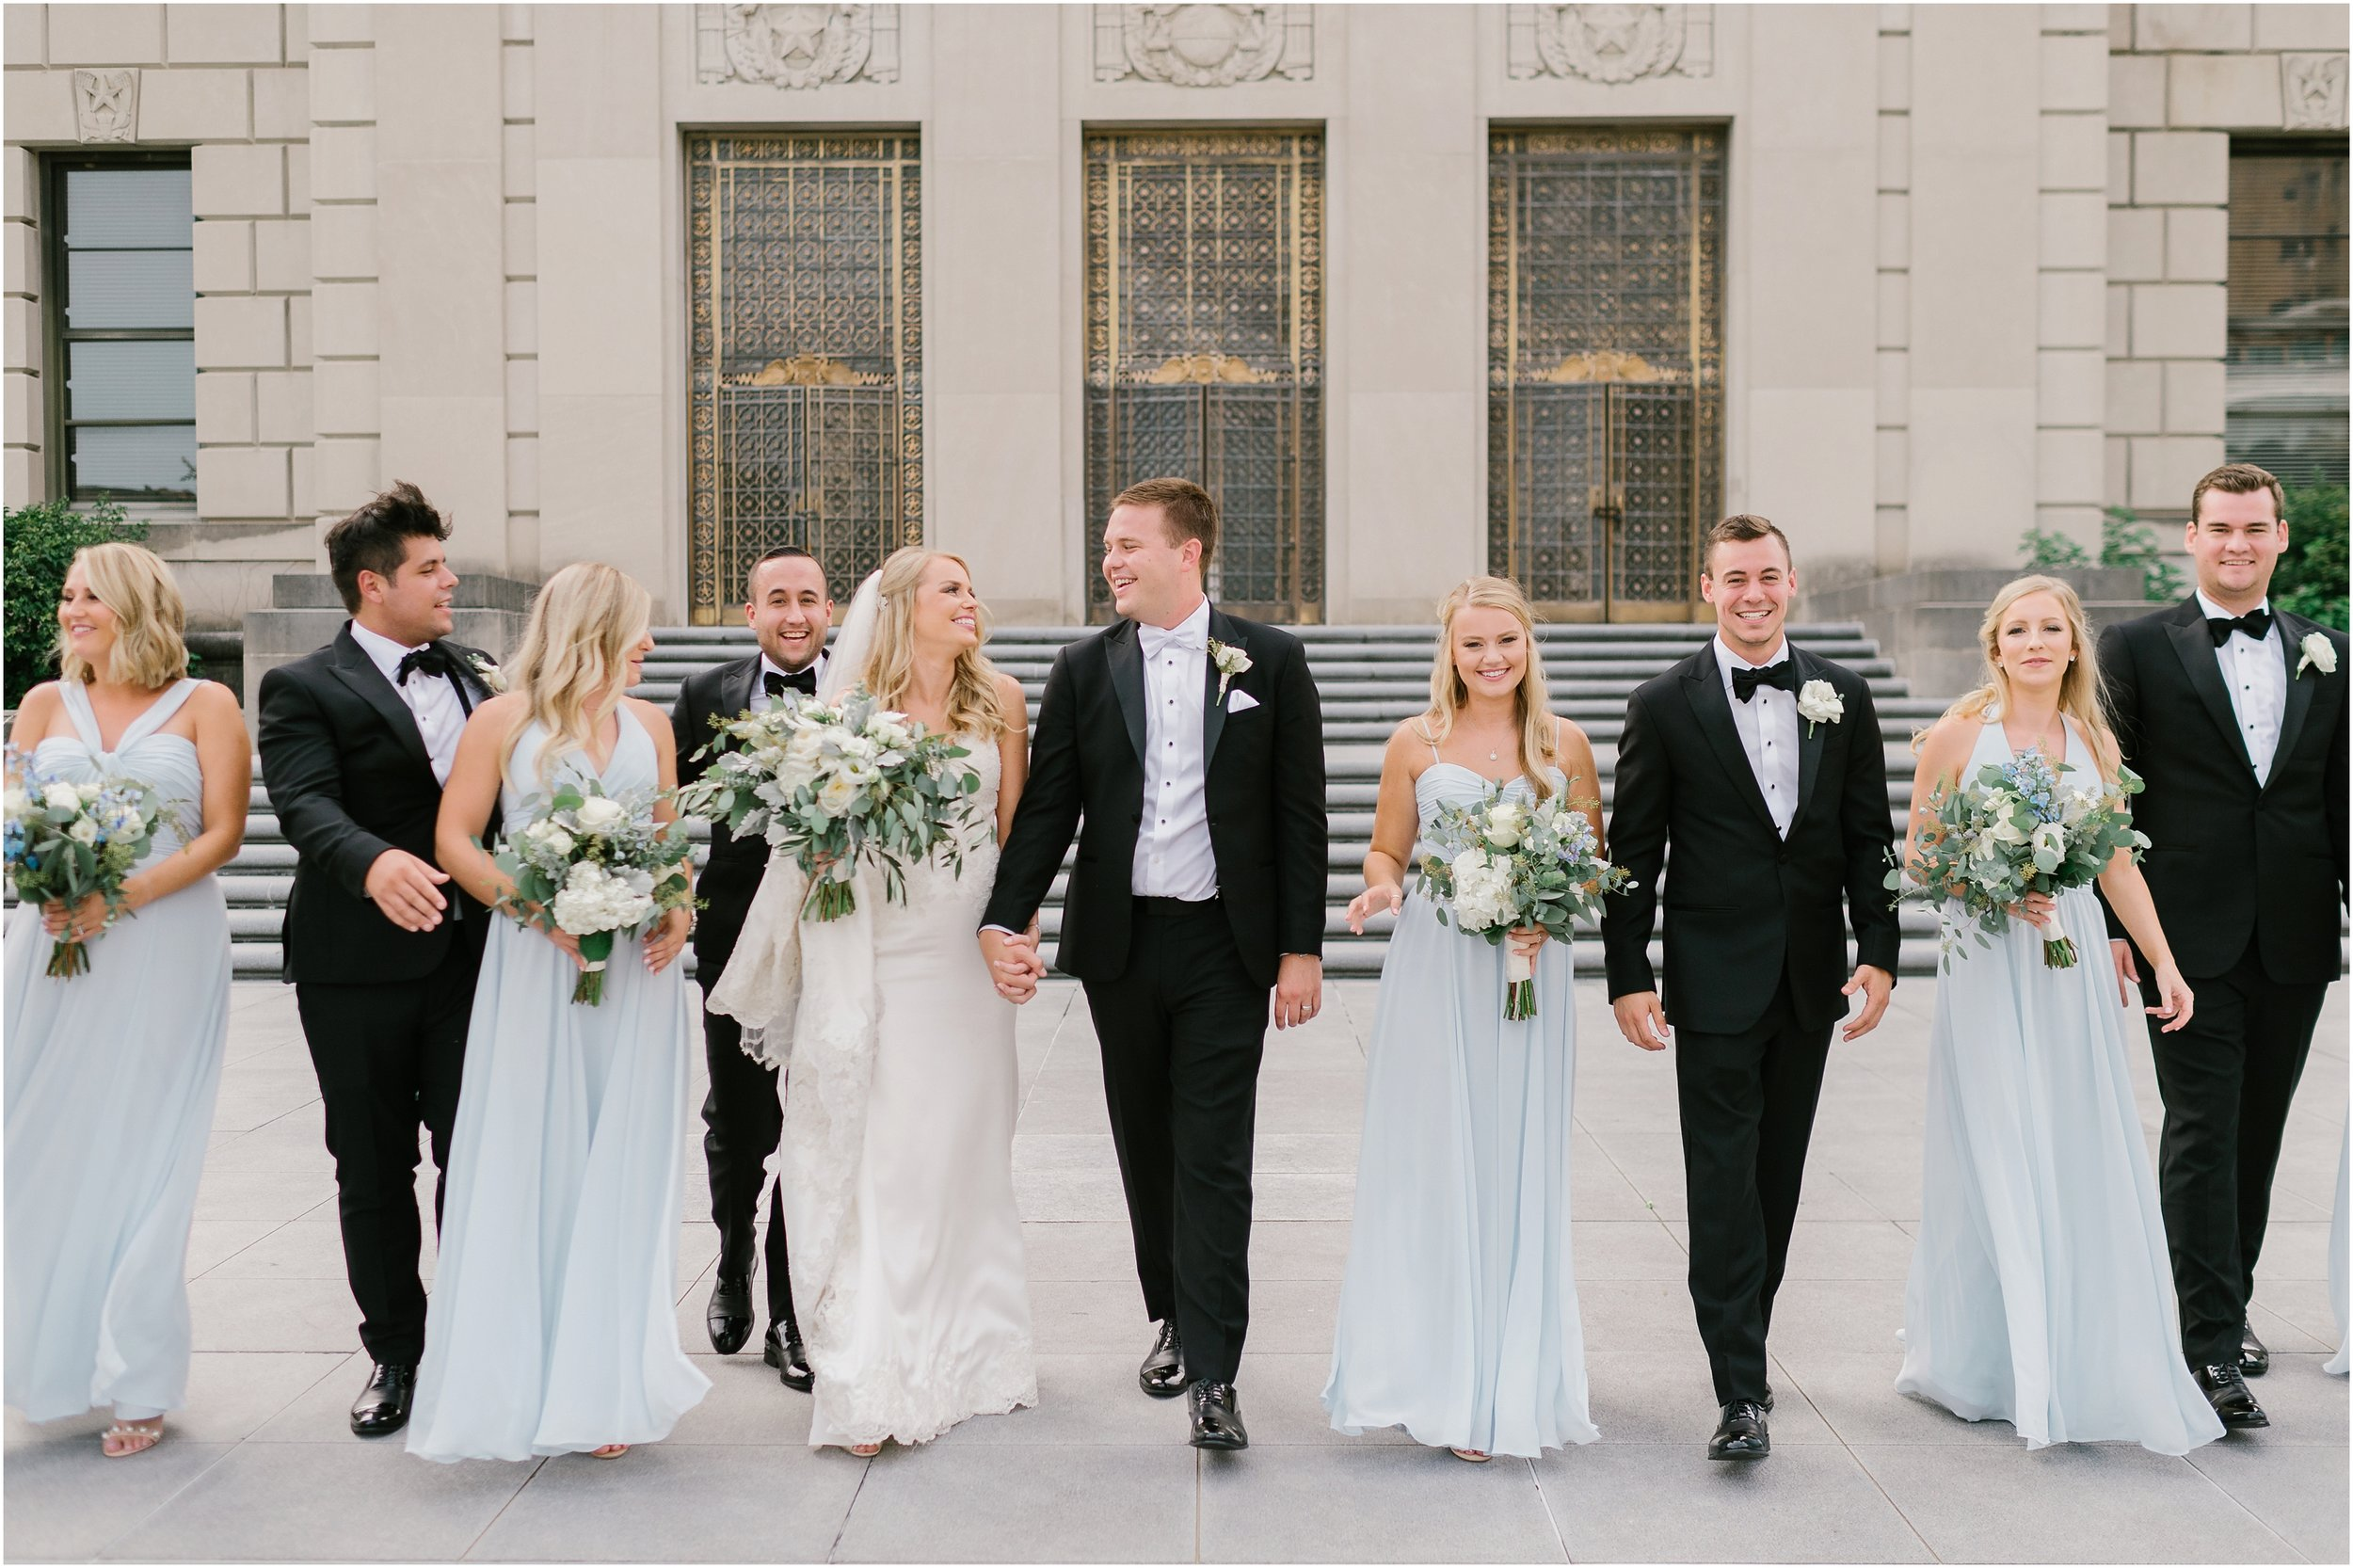 Rebecca_Shehorn_Photography_Indianapolis_Wedding_Photographer_8952.jpg